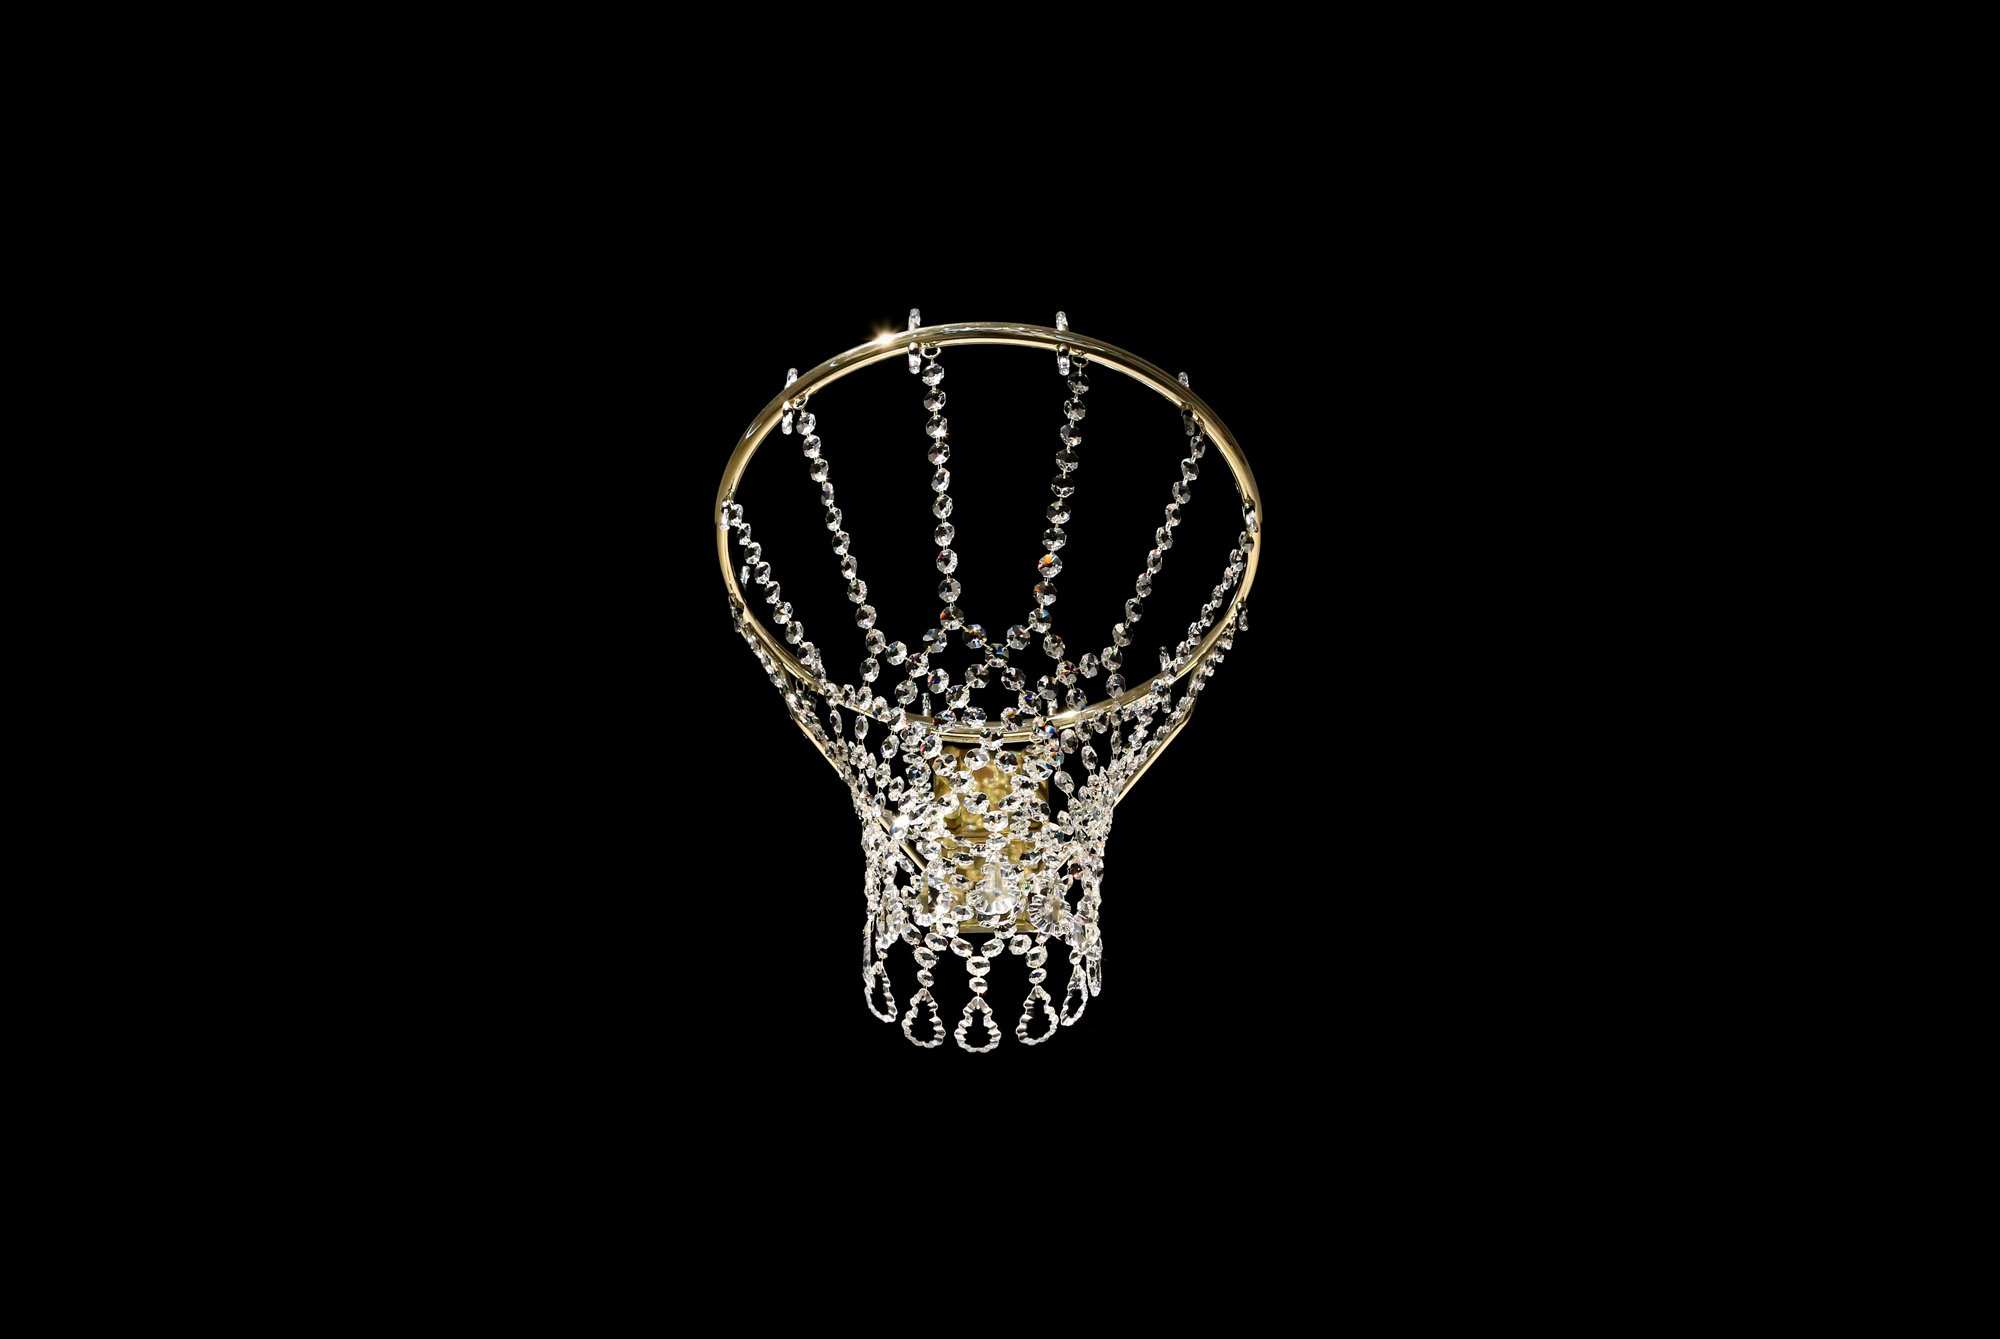 Basketball chandelier